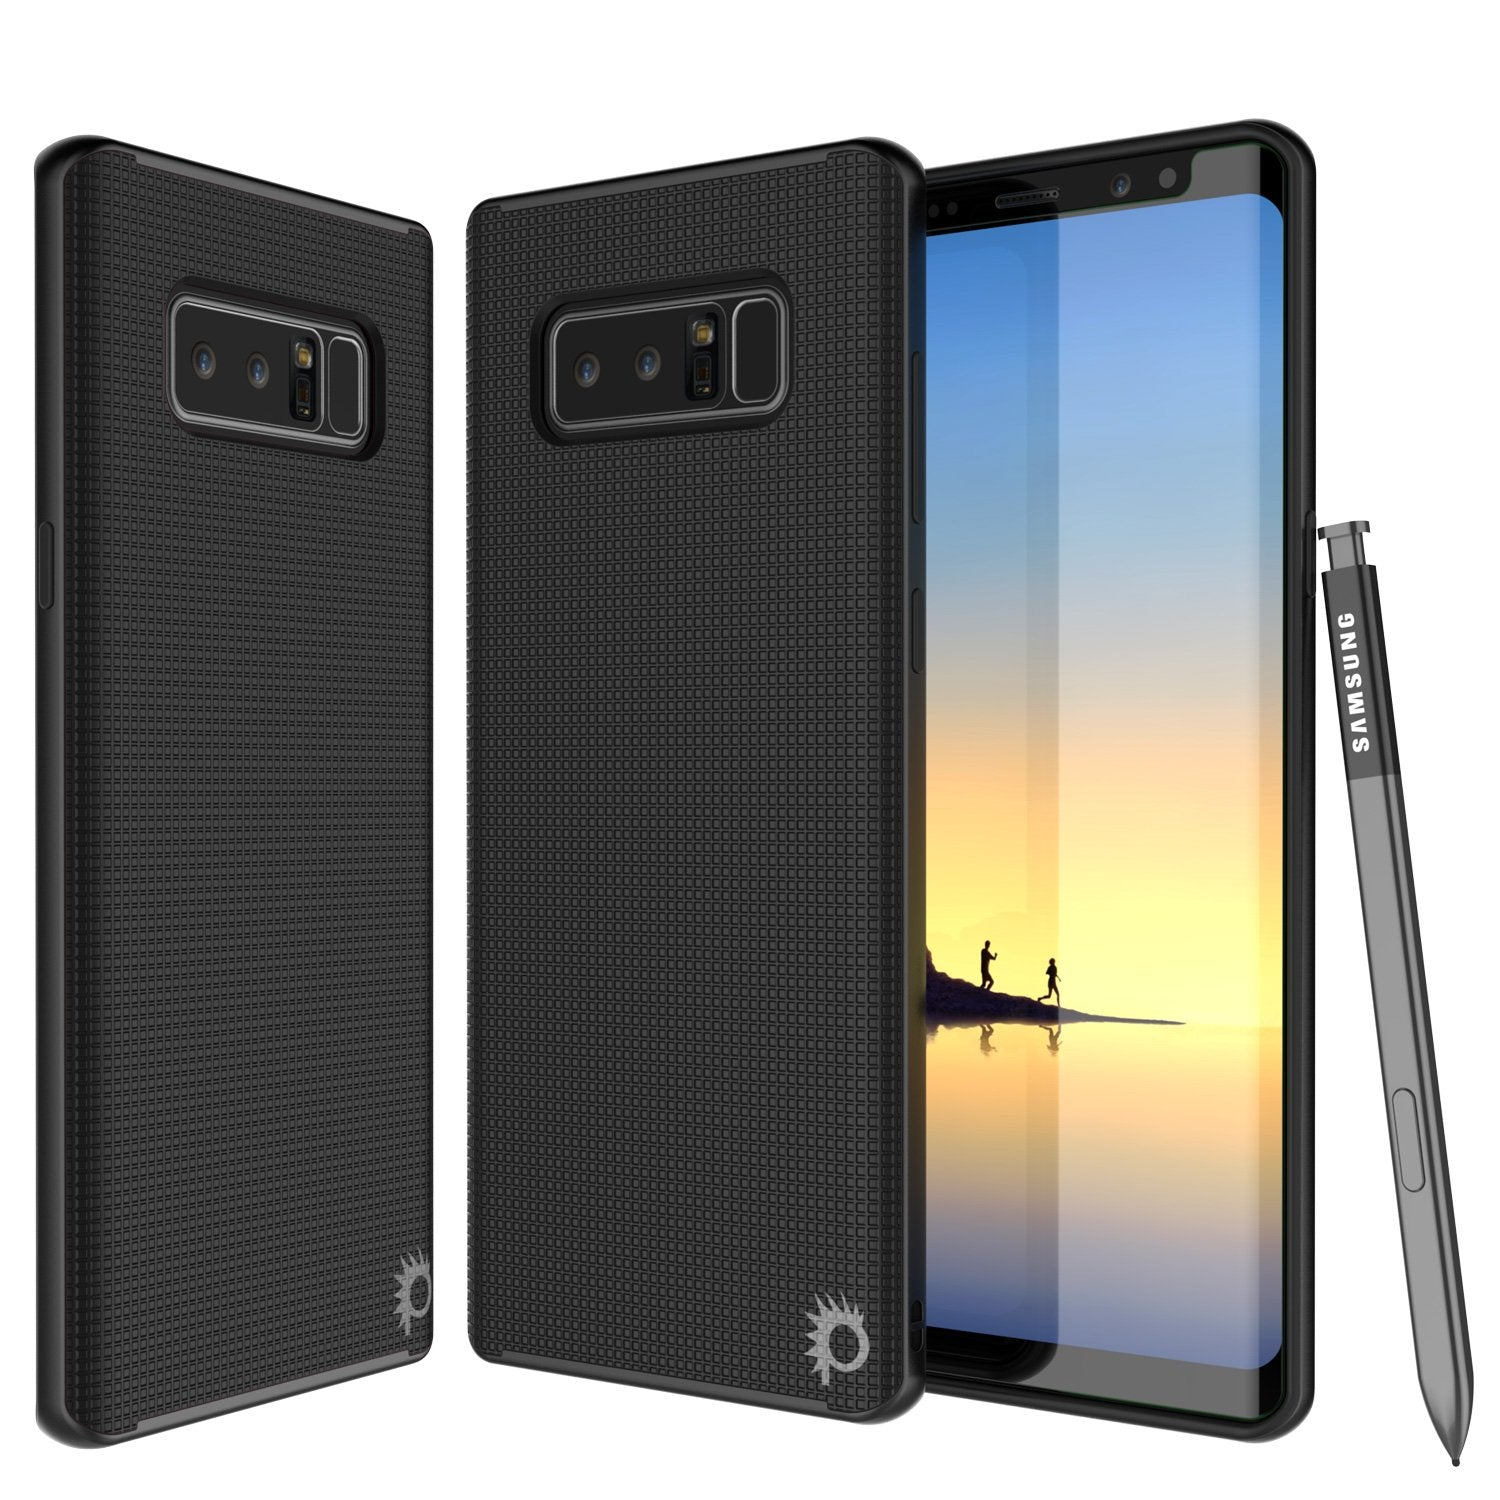 Galaxy Note 8 Screen/Shock Protective Dual Layer Case [Black]